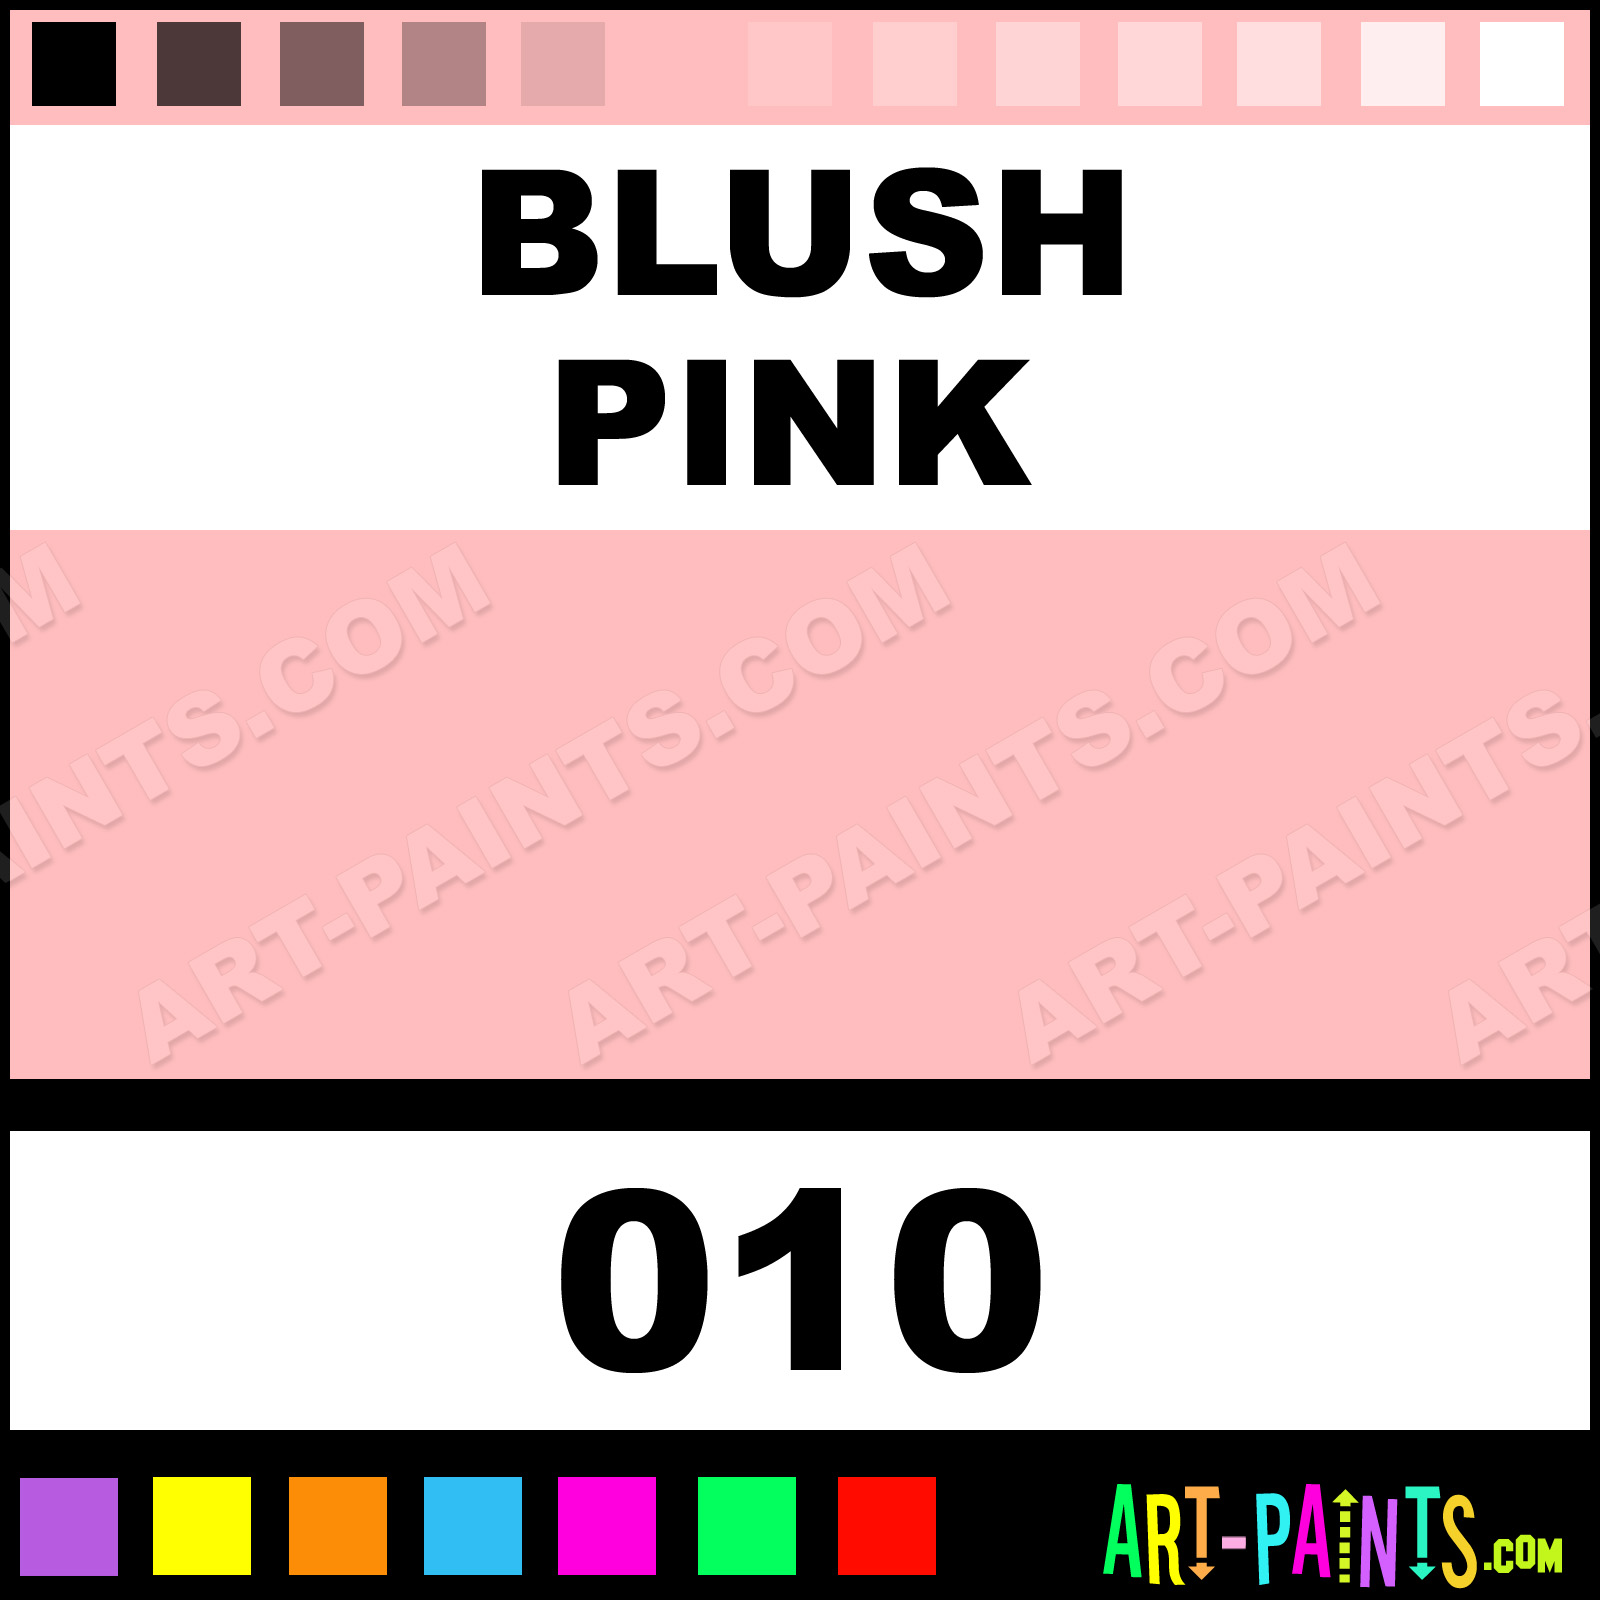 Blush Pink Four In One Paintmarker Marking Pen Paints 010 Blush